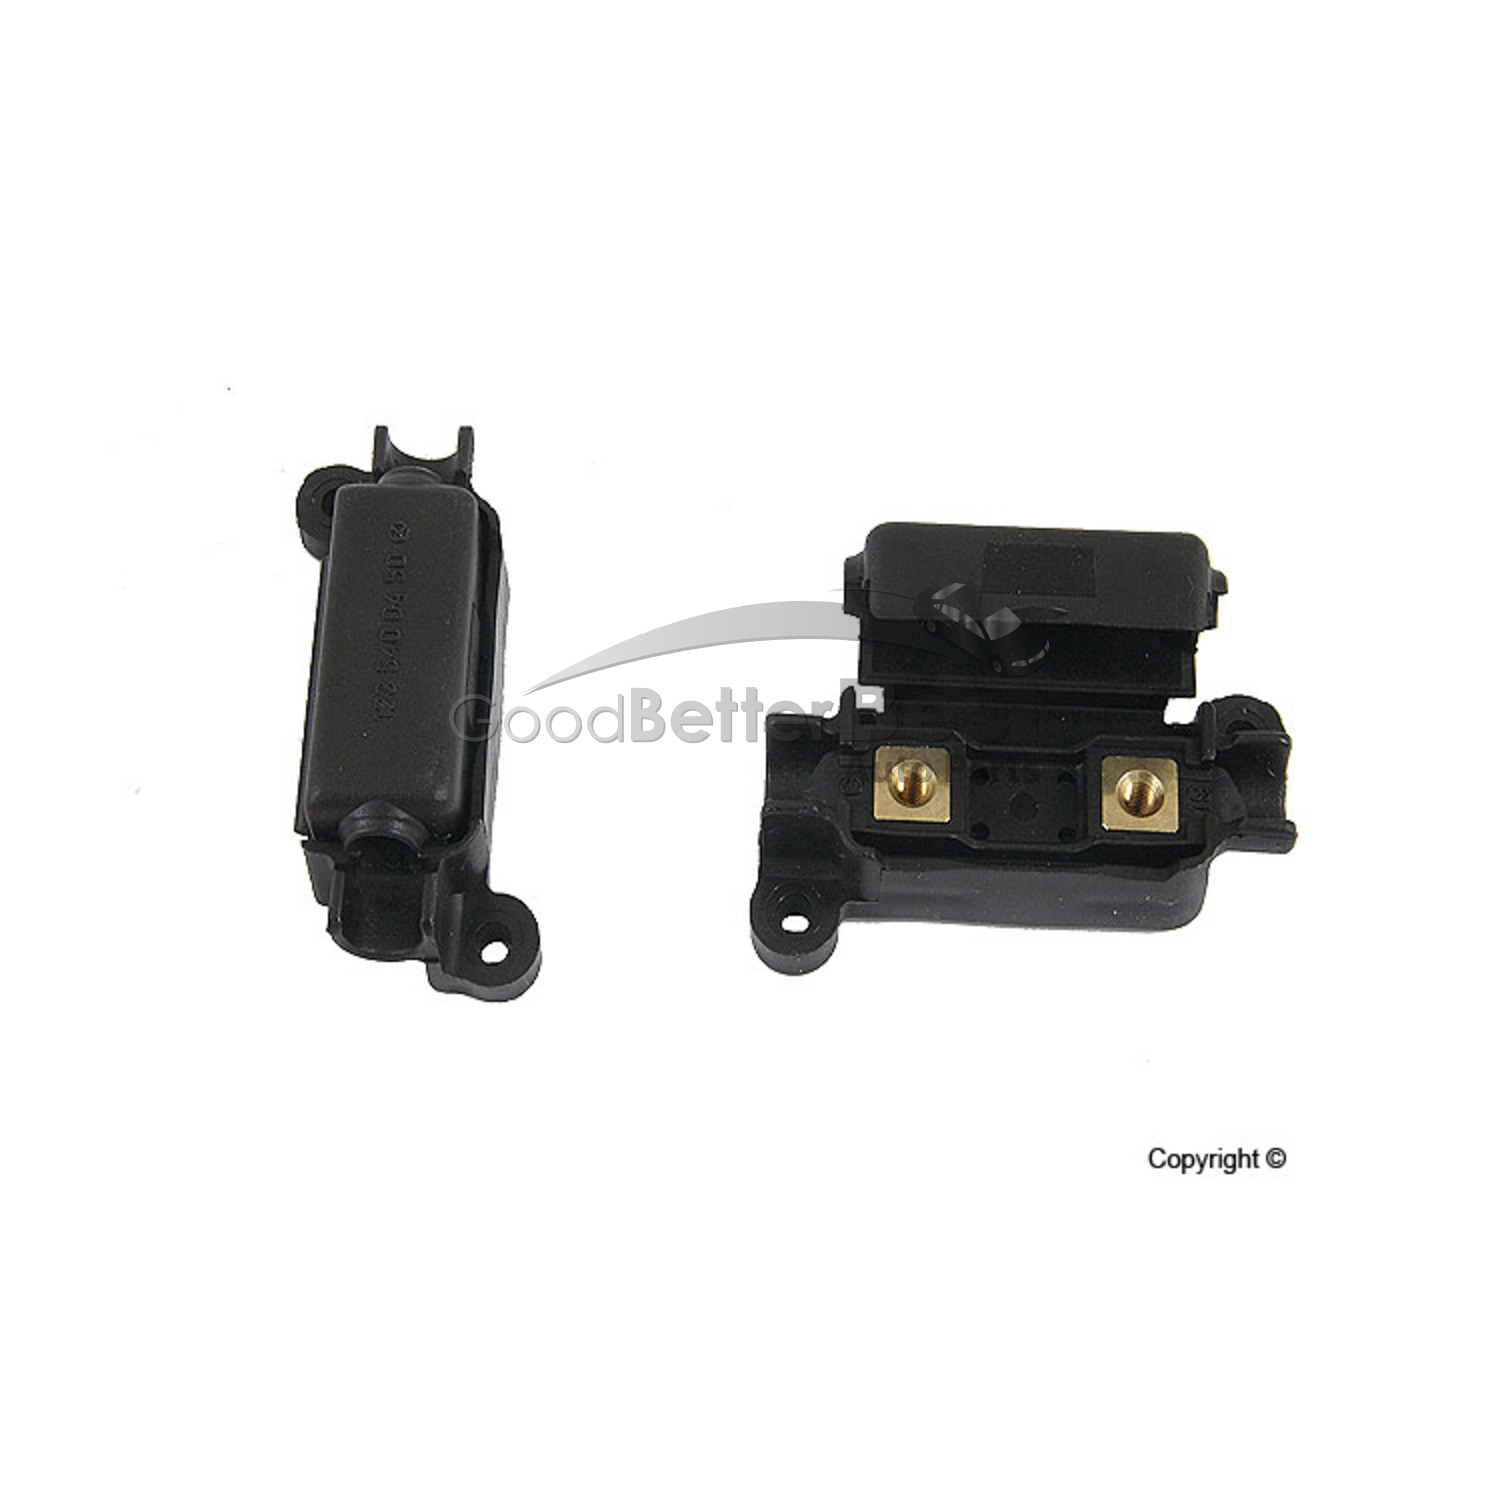 hight resolution of details about one new genuine fuse box 1235400450 for mercedes mb